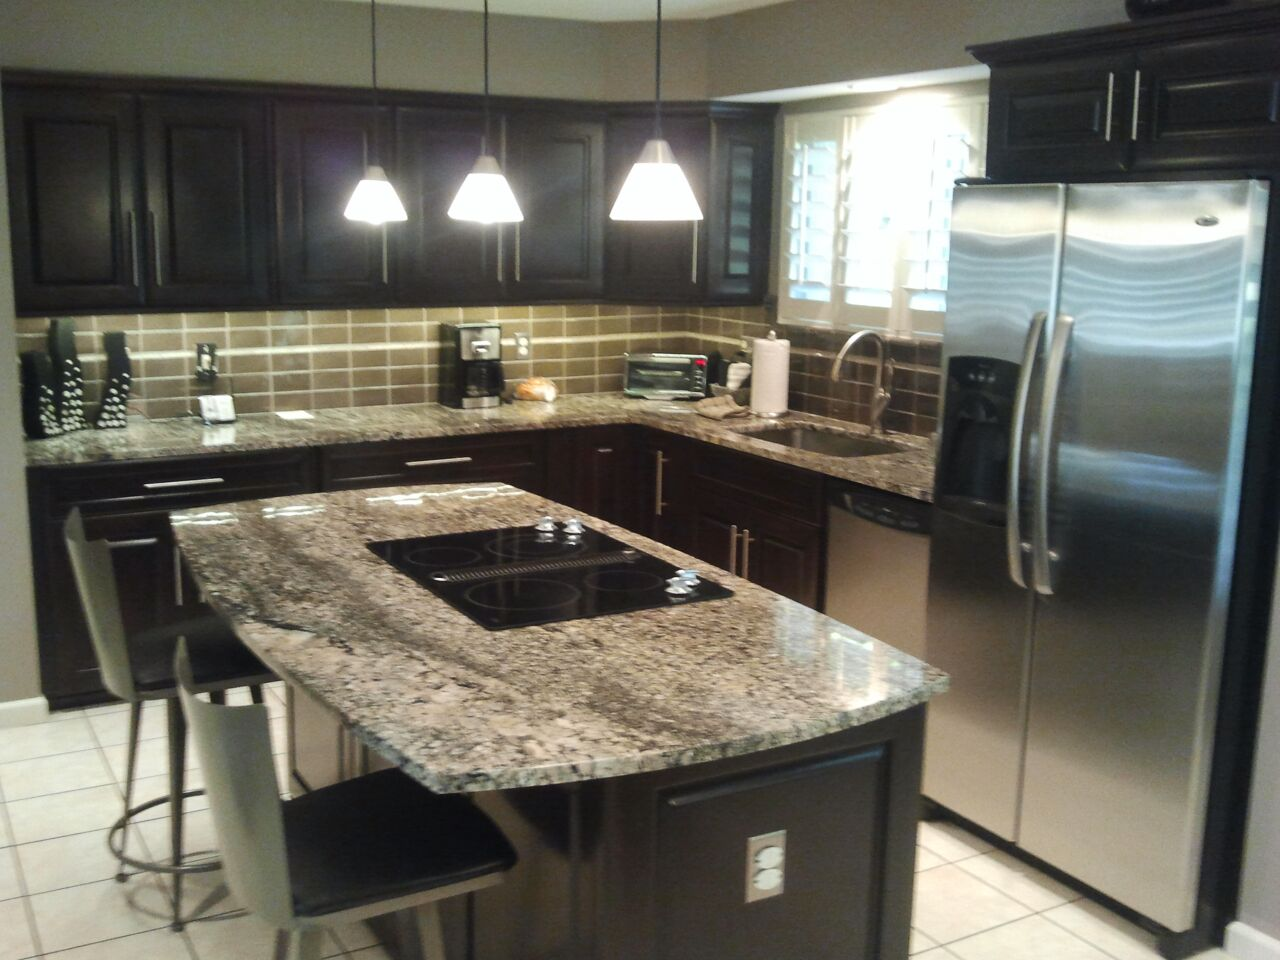 Renew Kitchen Cabinets Refacing Refinishing. Cabinet Refacing St Louis Mo